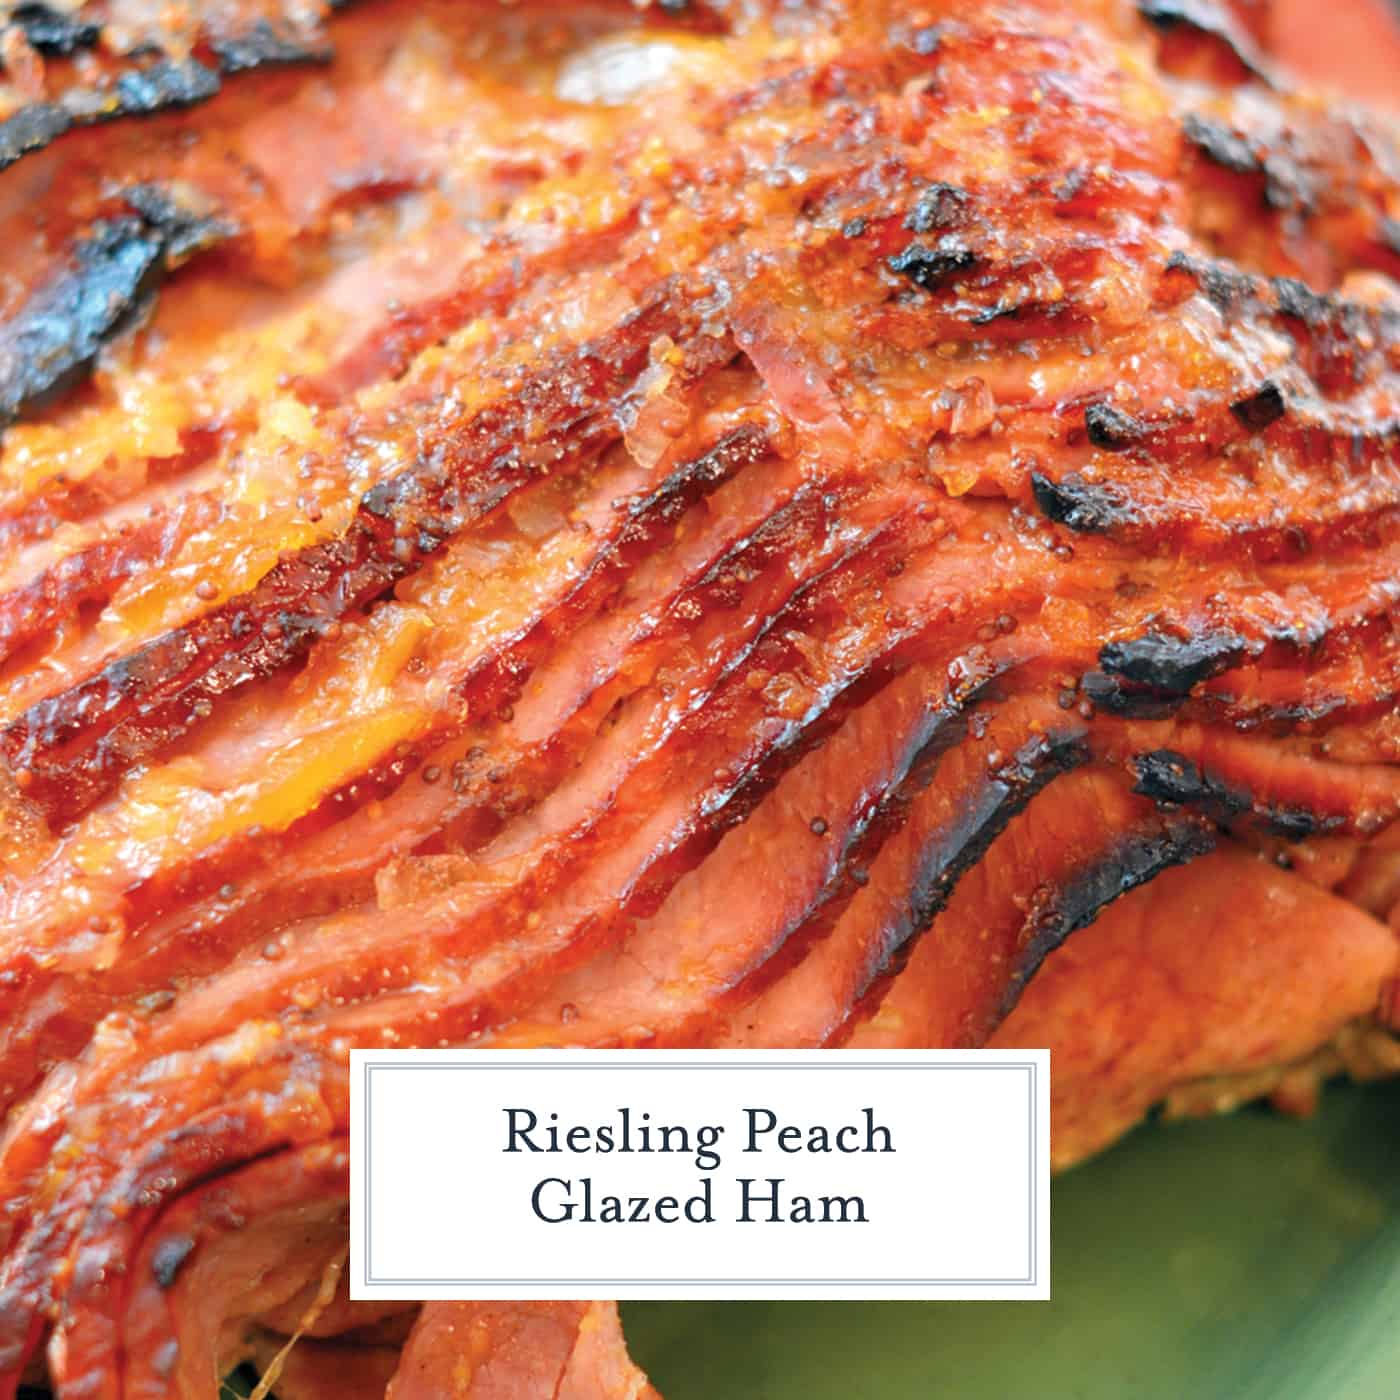 A close up of glazed ham